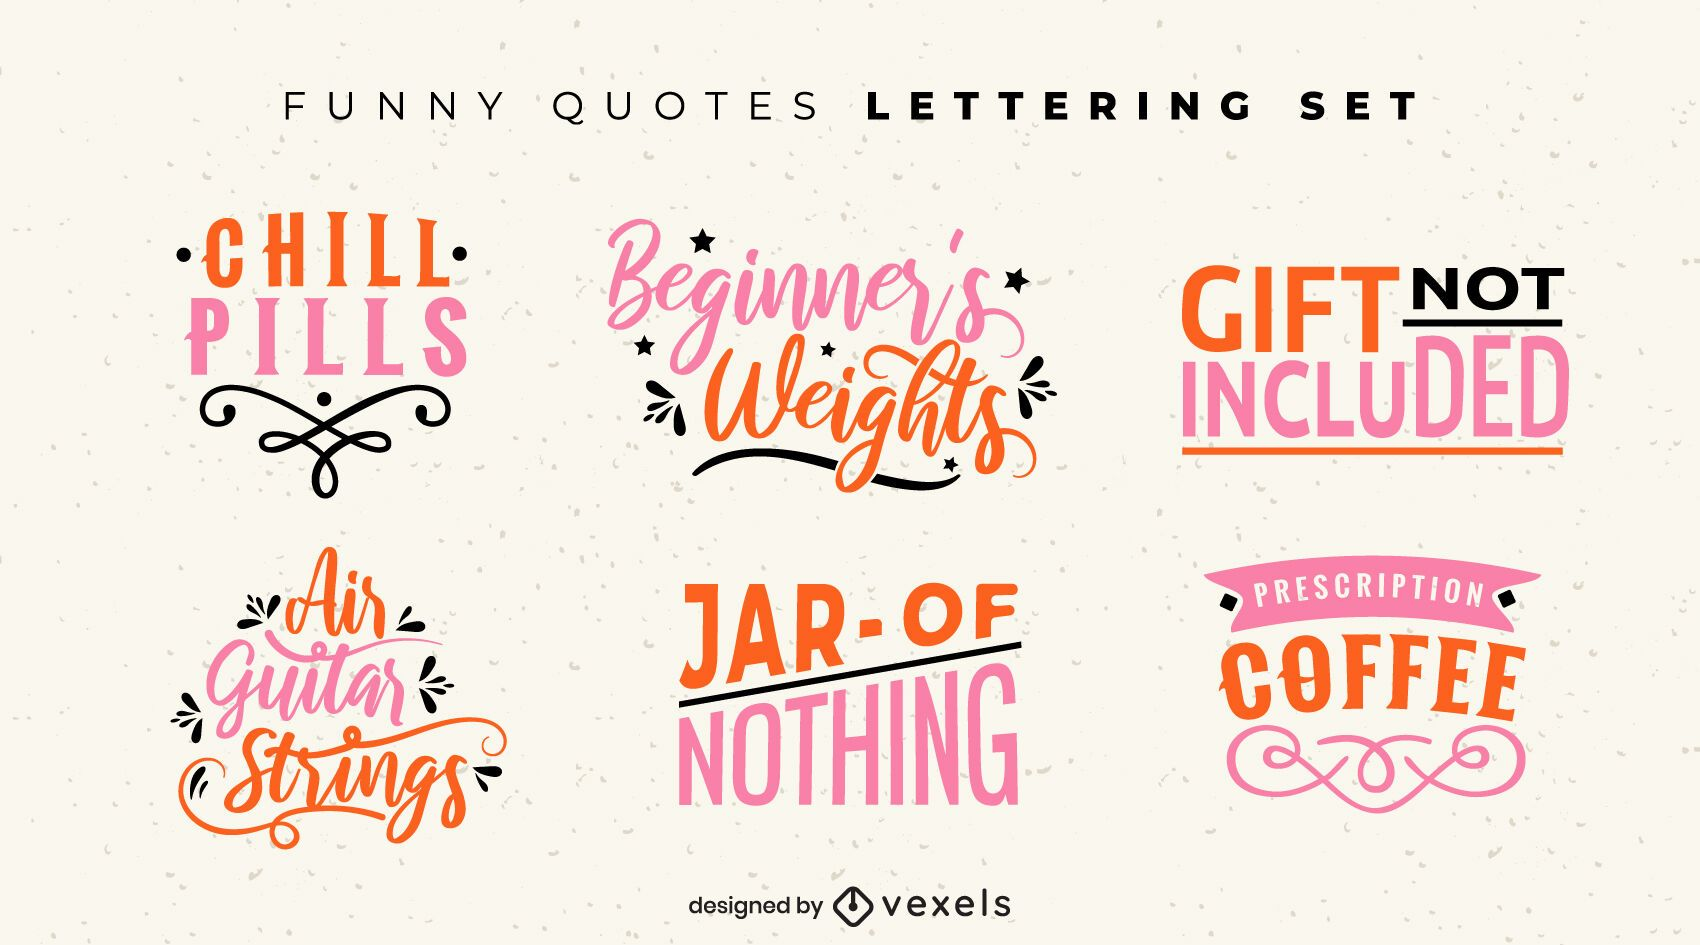 Funny quotes lettering set